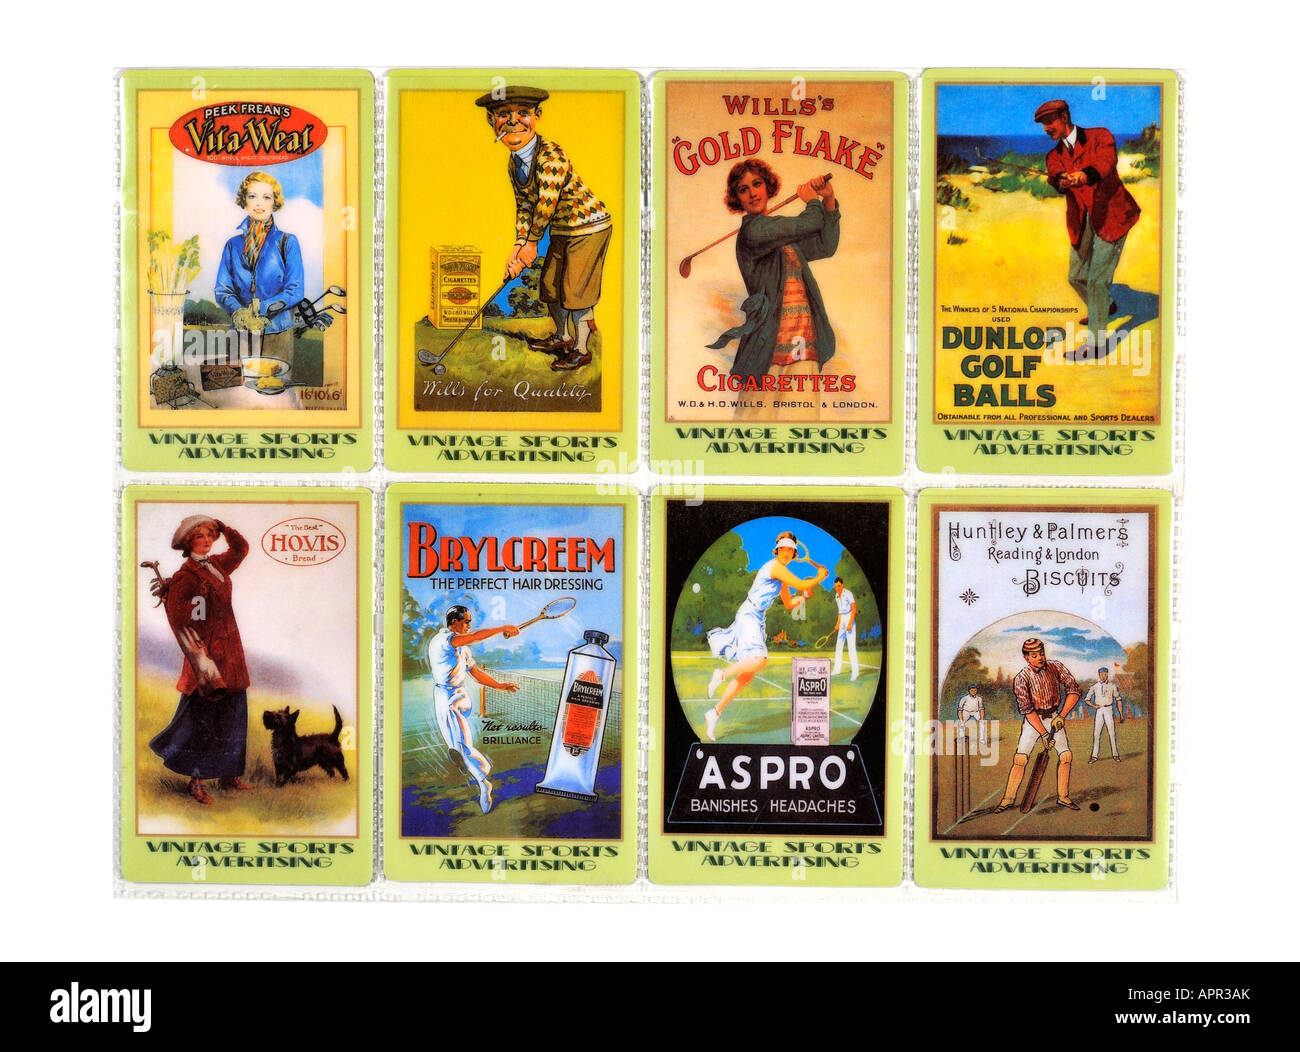 Unicom Phonecard Collection Limited Edition of Vintage Sporting Advertising For Editorial Use Only - Stock Image